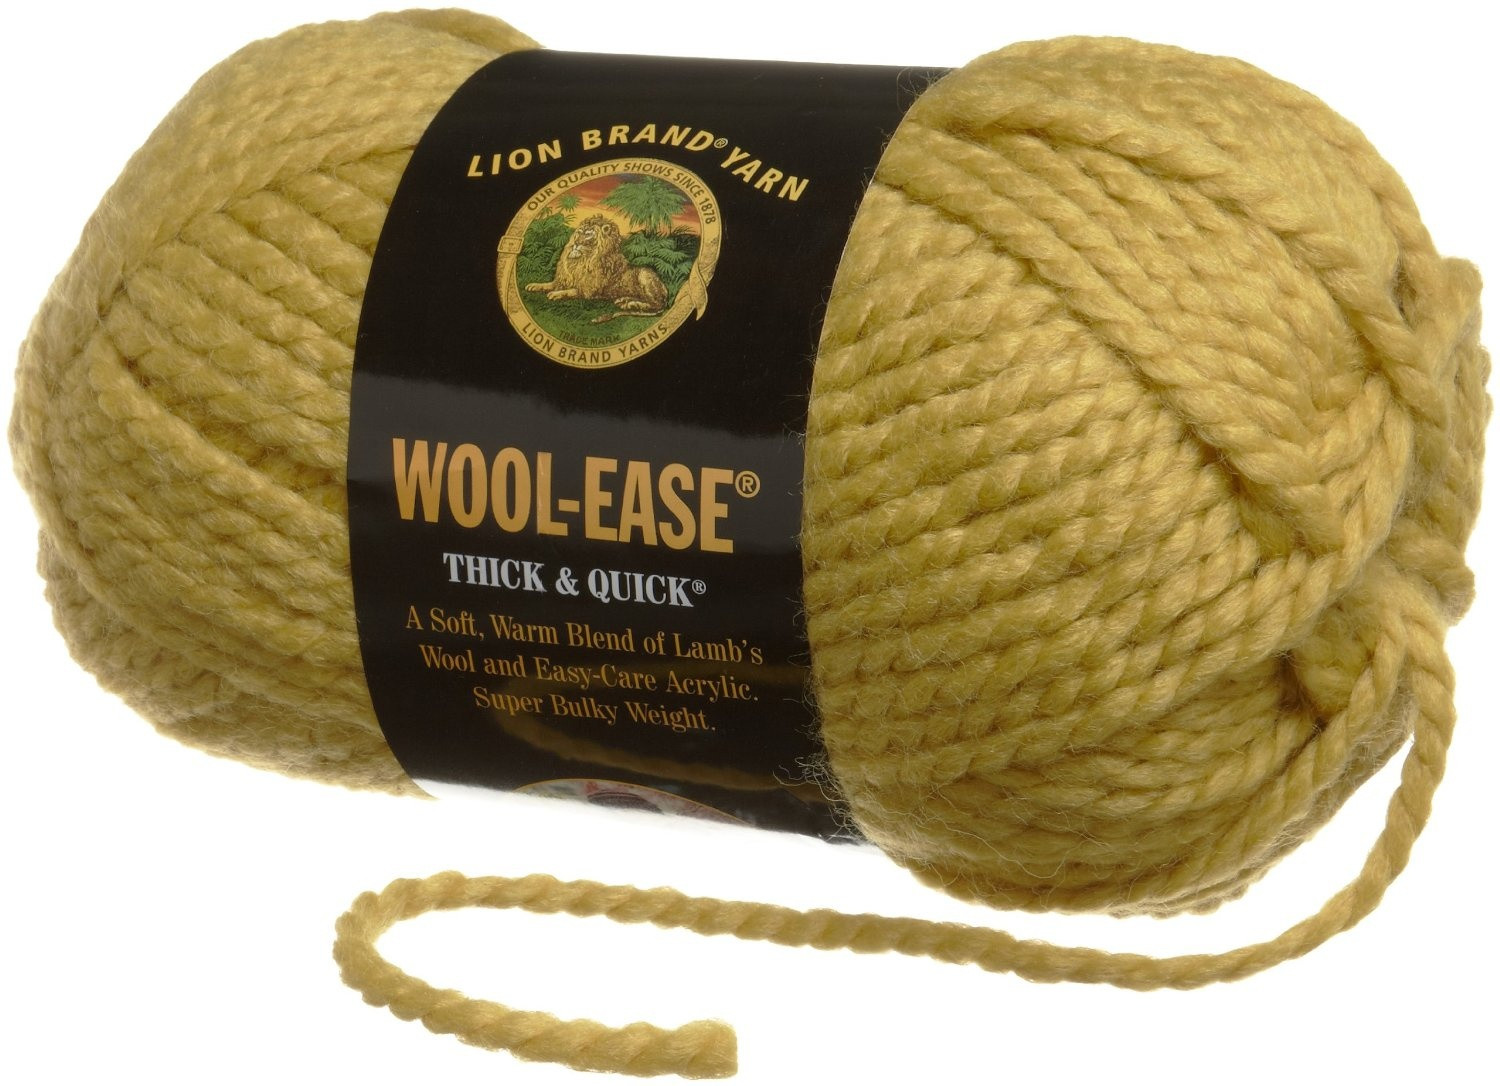 Wool Ease Thick & Quick Yarn Awesome Lion Brand Yarn 640 136f Wool Ease Thick and Quick Yarn Of Great 46 Pictures Wool Ease Thick & Quick Yarn